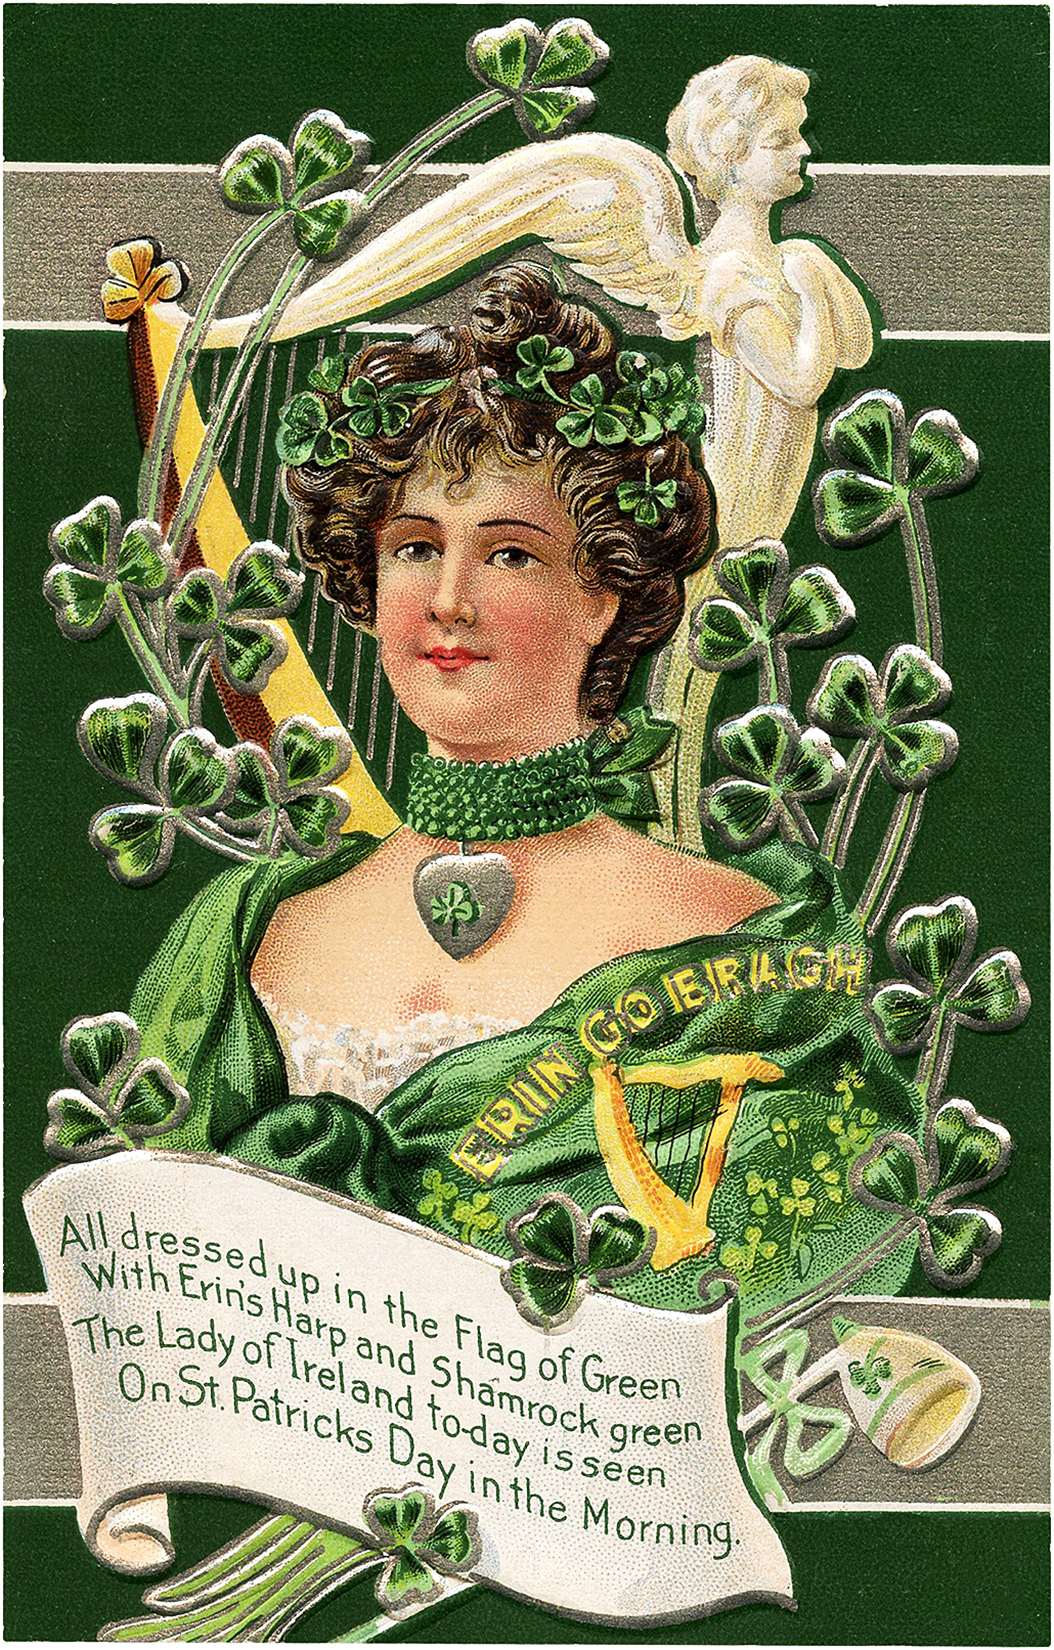 Vintage-Lady-of-Ireland-Image-GraphicsFairy